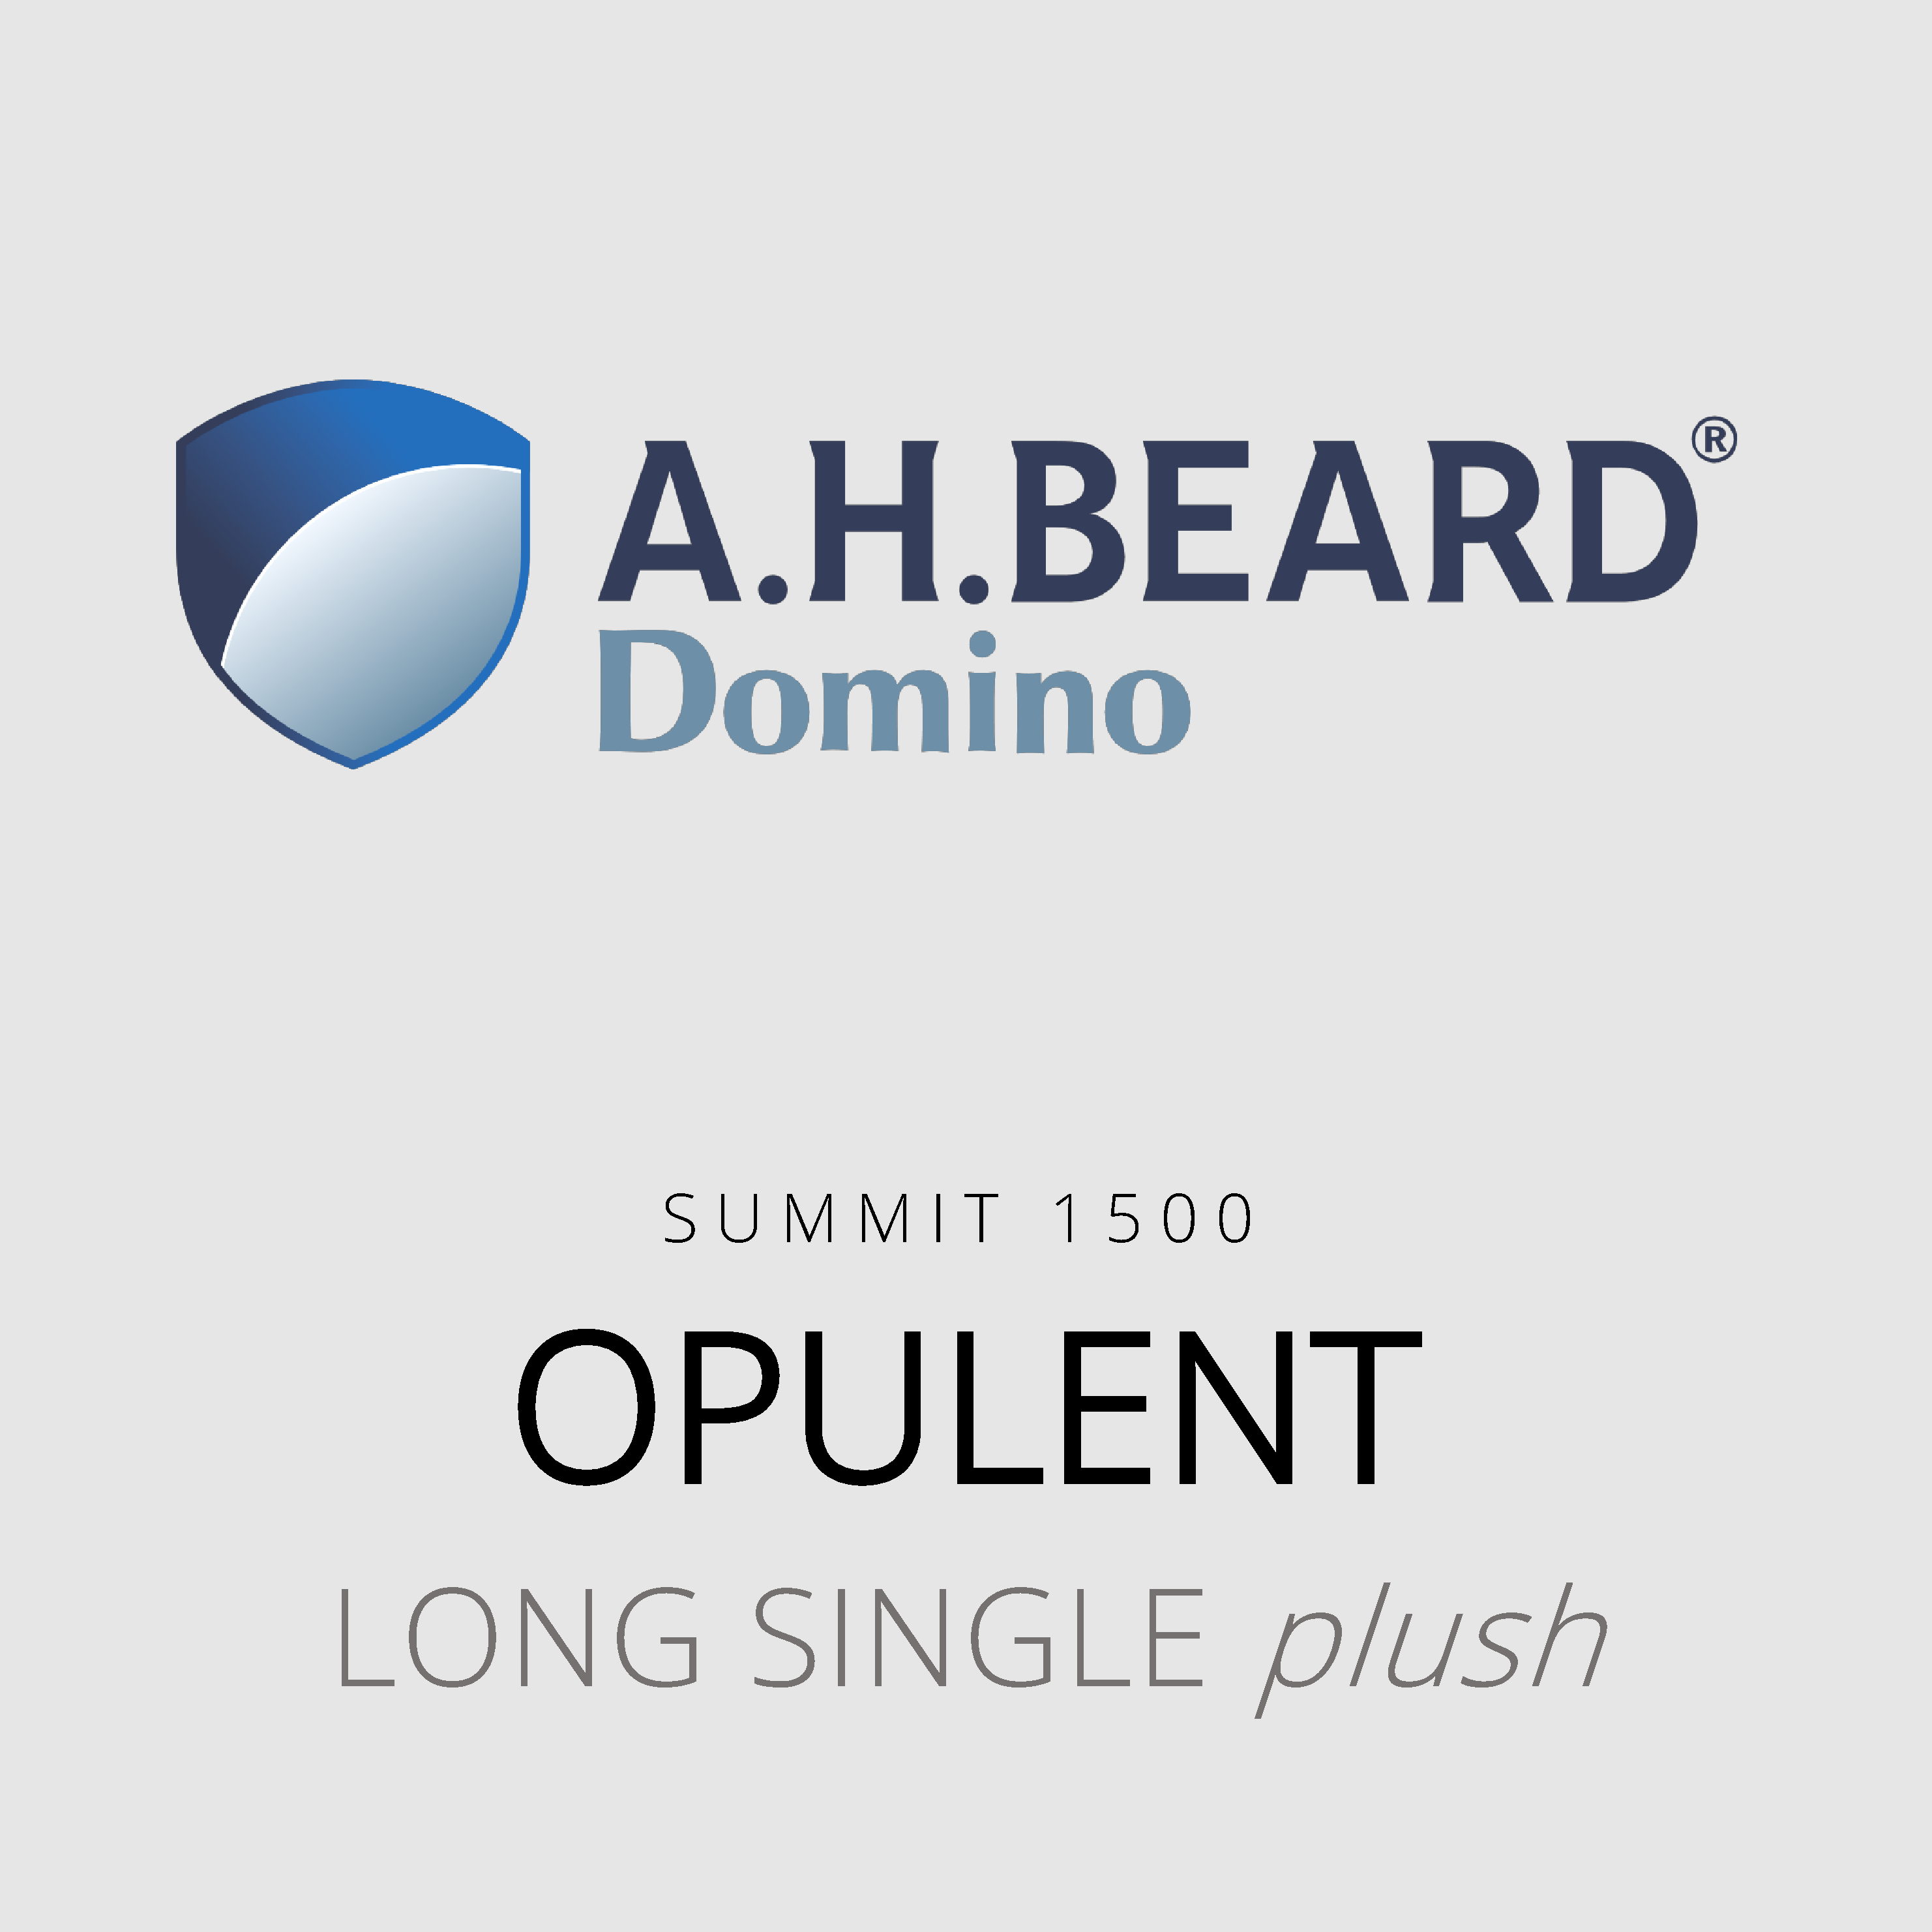 AH Beard Domino – Opulent – Summit 1500 – Long Single Plush Mattress